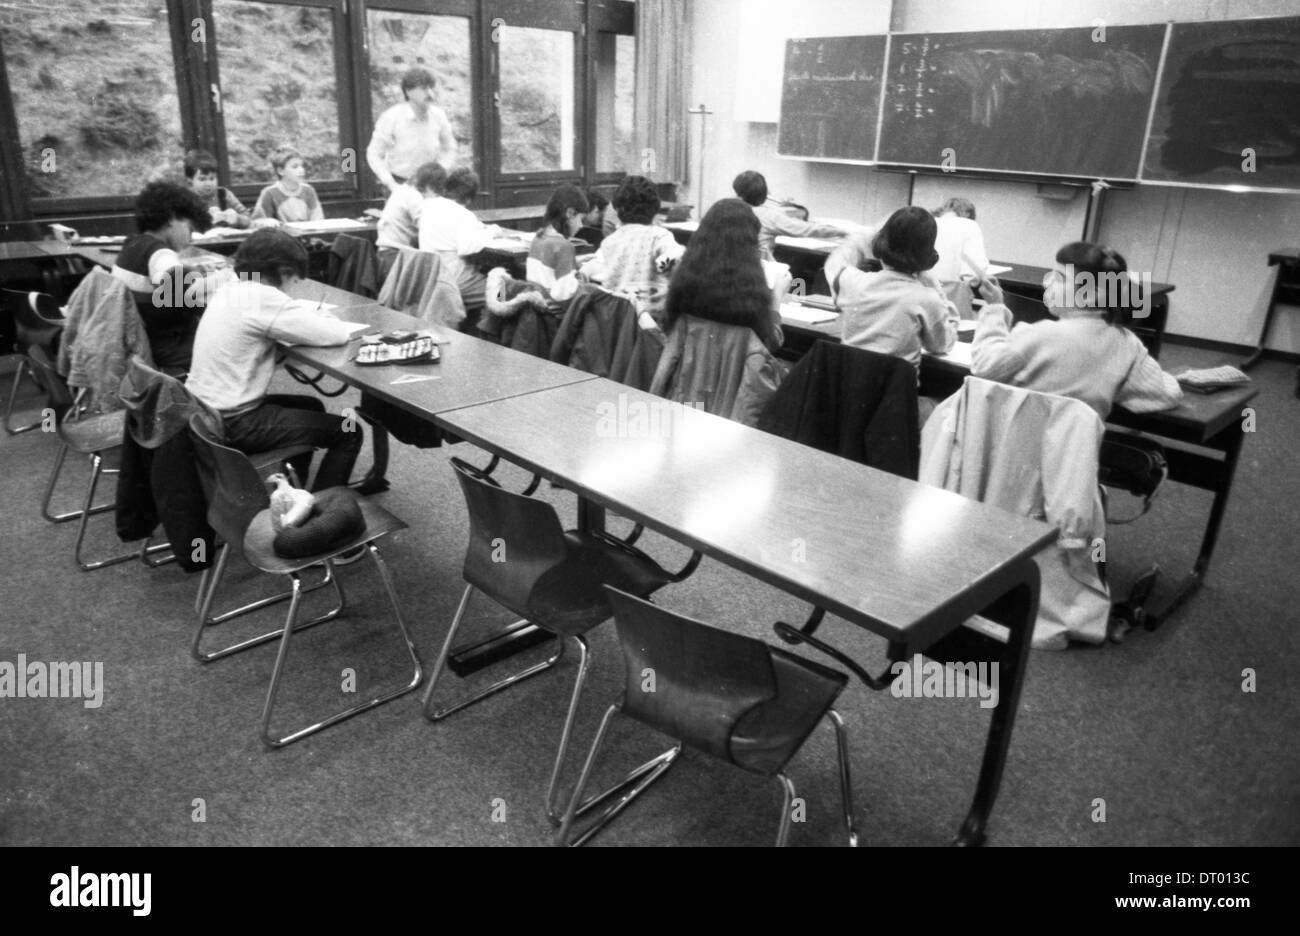 The picture shows teaching at a secondary school in chemistry, mathematics, and dry with girls and boys |. - Stock Image